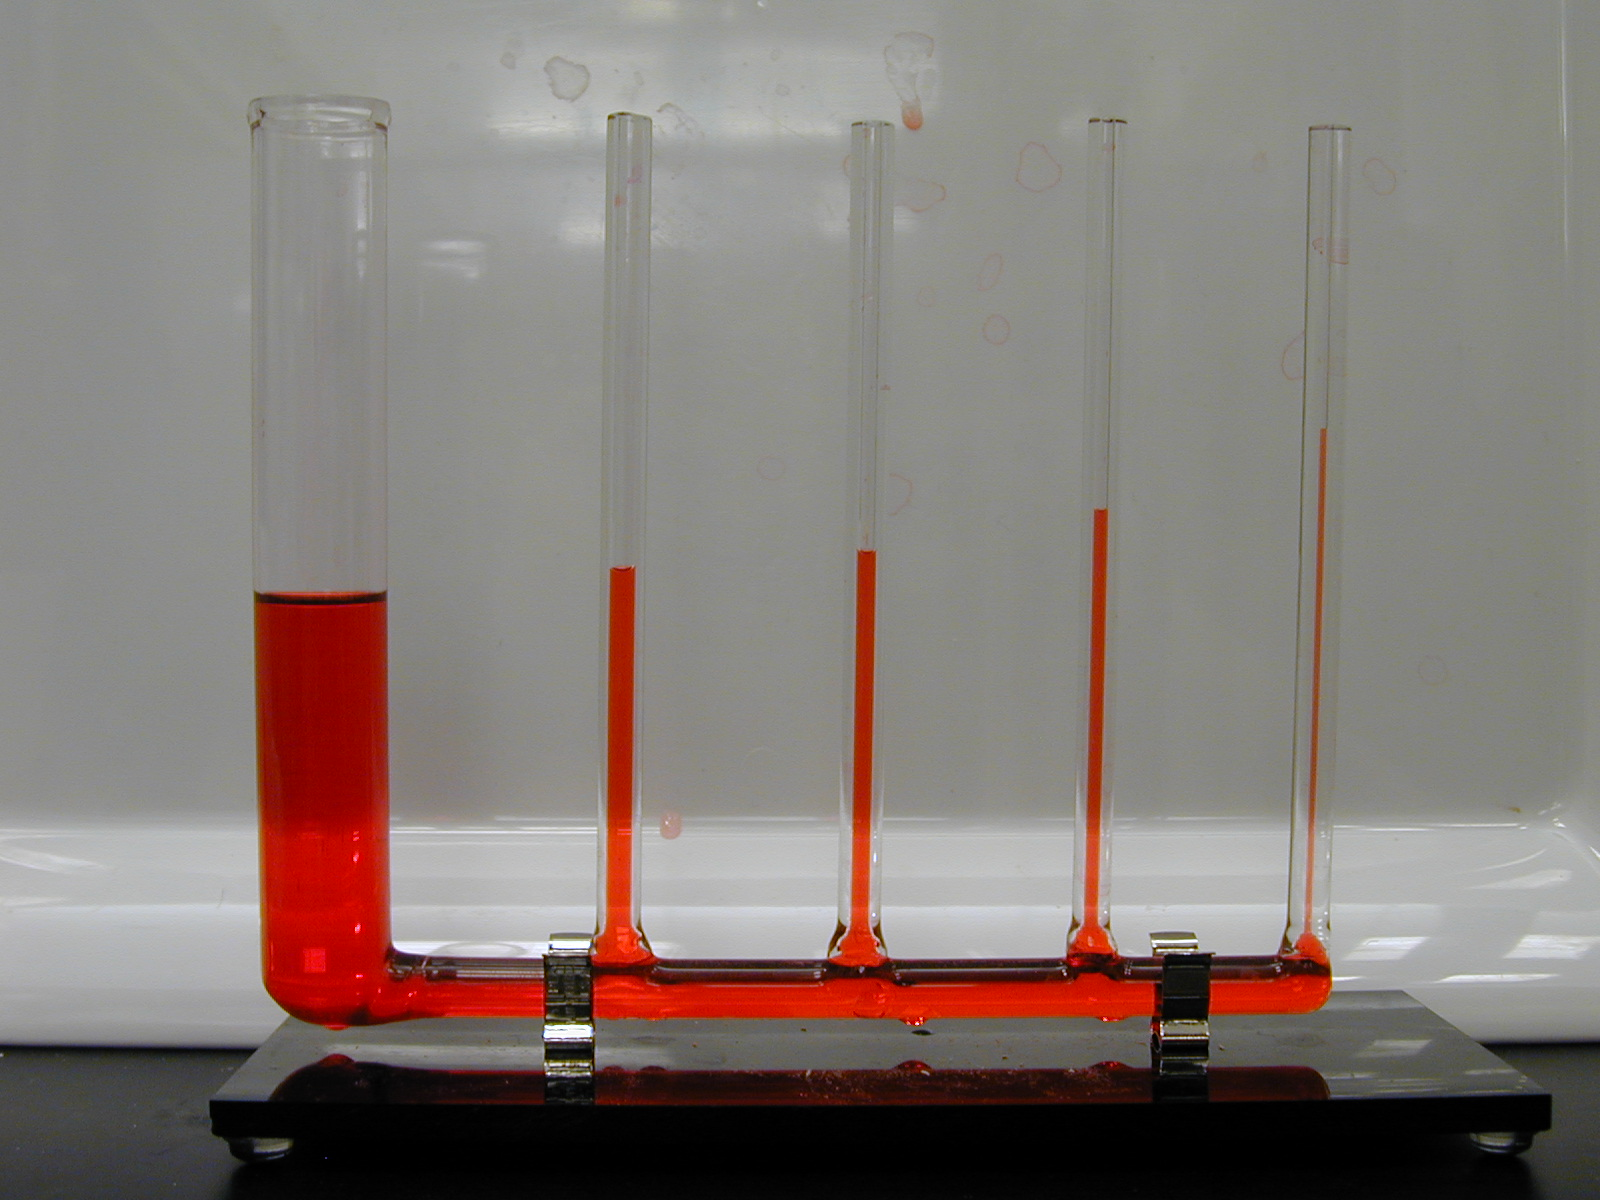 describe the relationship between tube diameter and capillary action